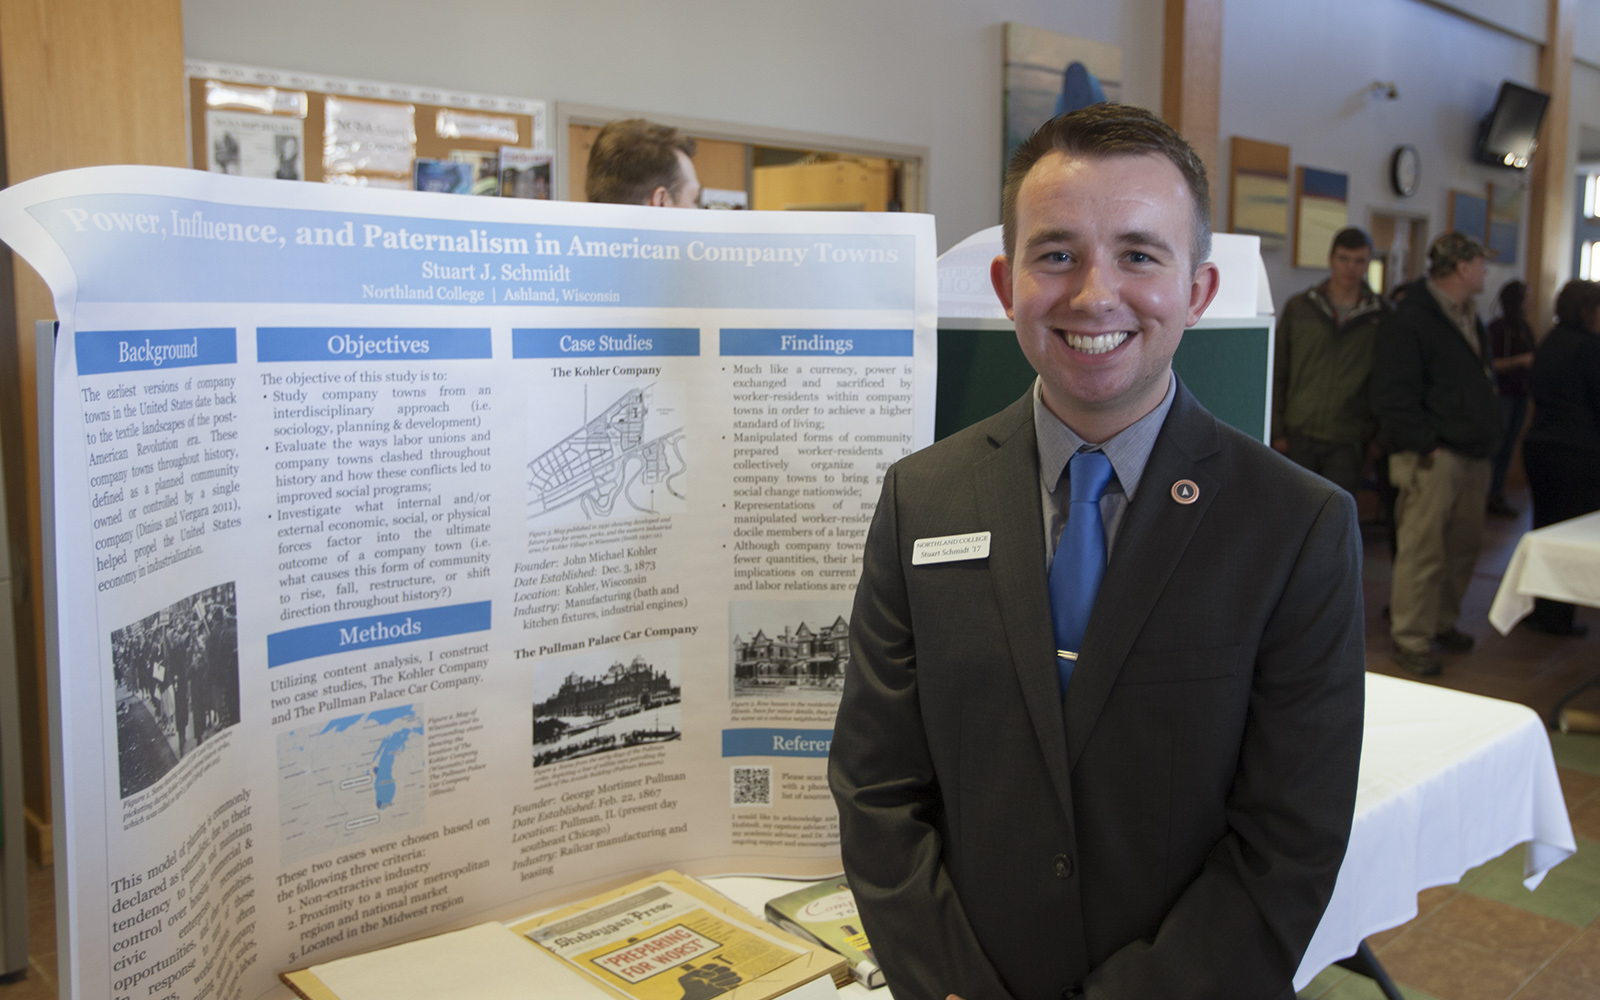 Northland College student presents research on company towns.